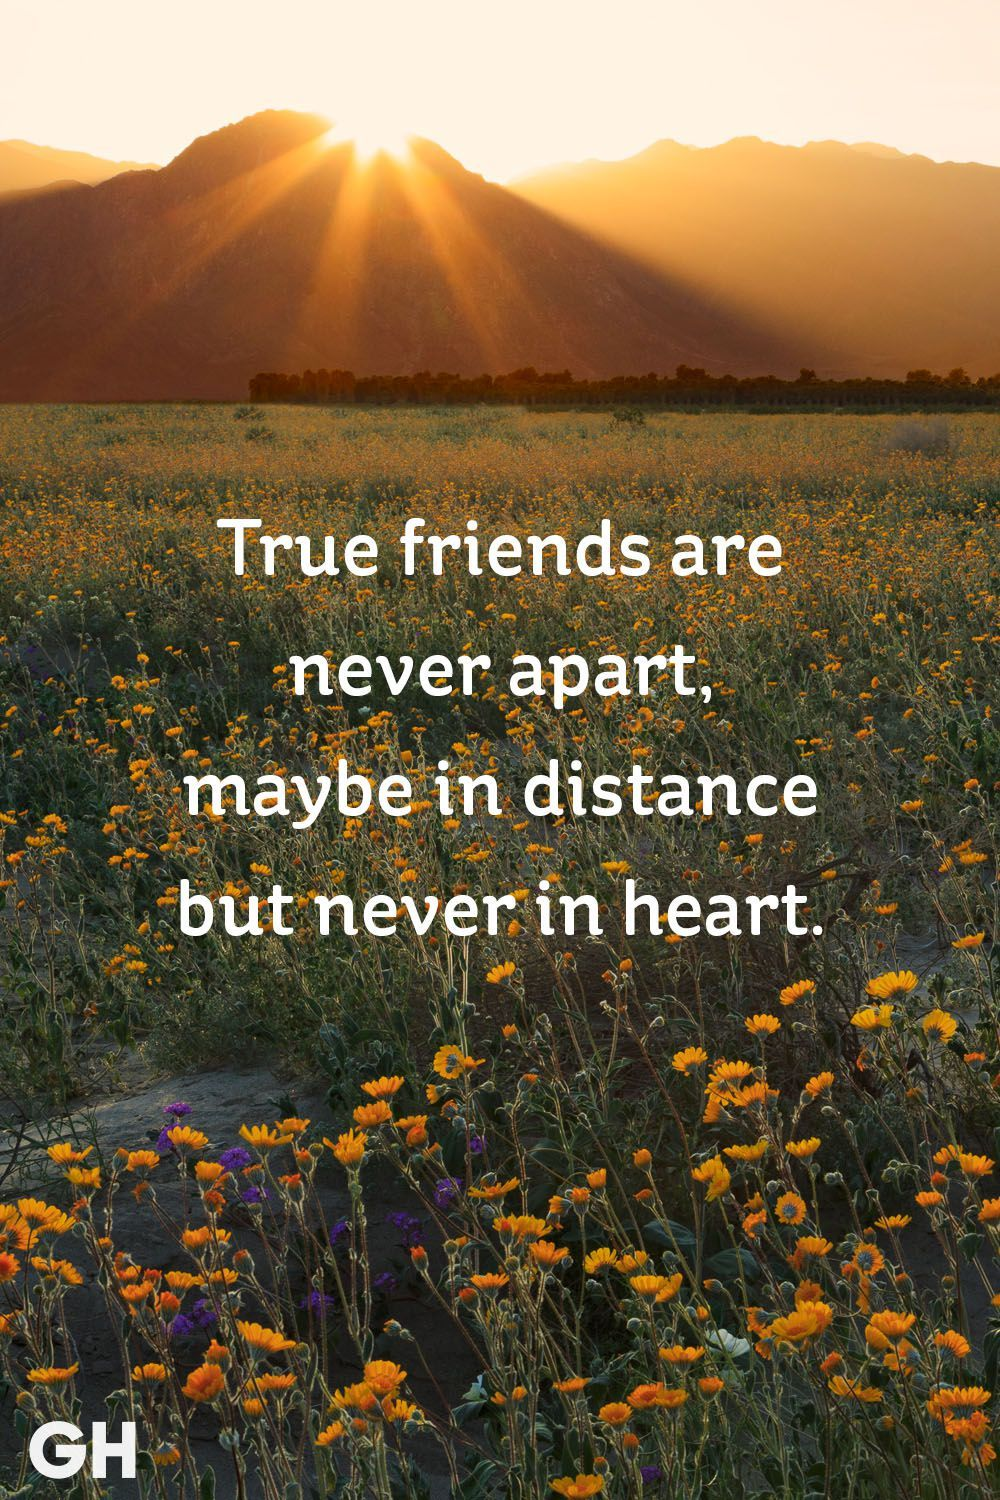 Short Friendship Quotes to Share With Your Best Friend - Cute ...   Friend quotes distance, Long distance friendship quotes, Short friendship quotes